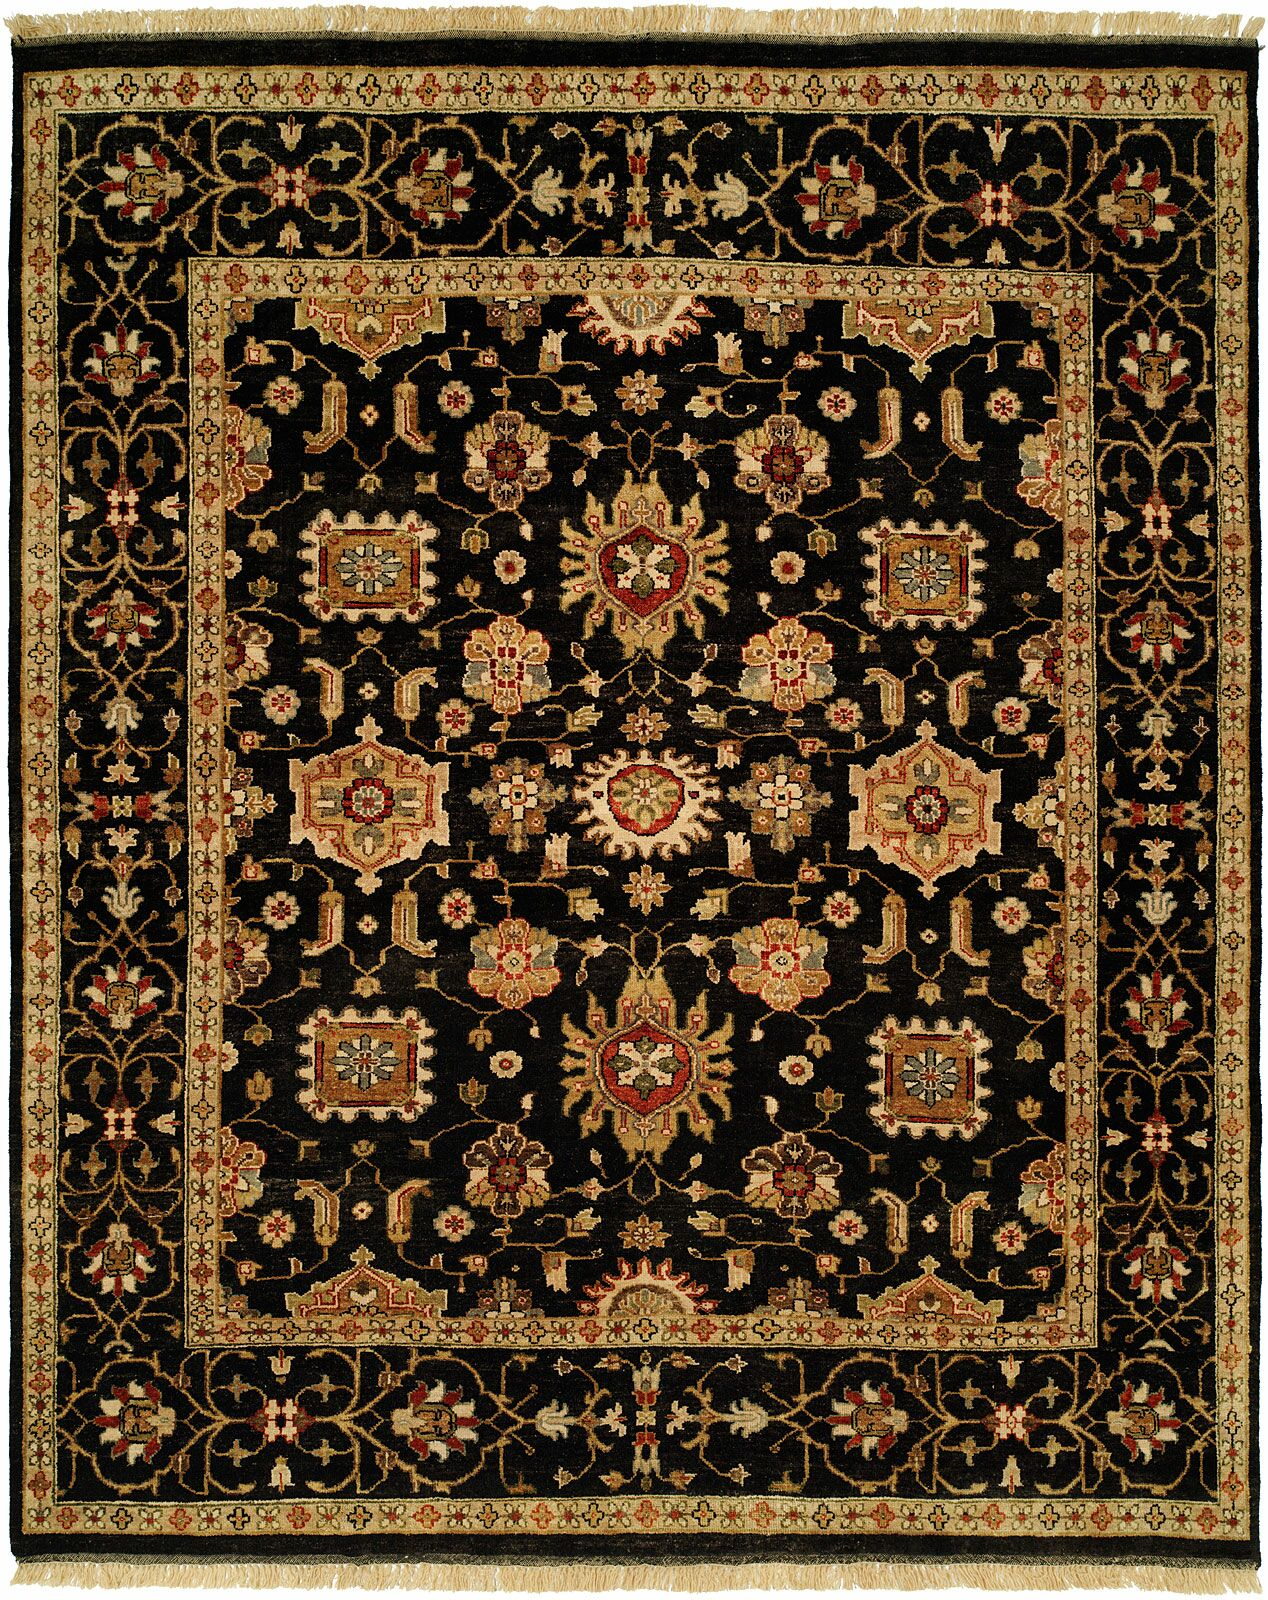 Doha Hand-Knotted Black/Orange Area Rug Rug Size: 9' x 12'